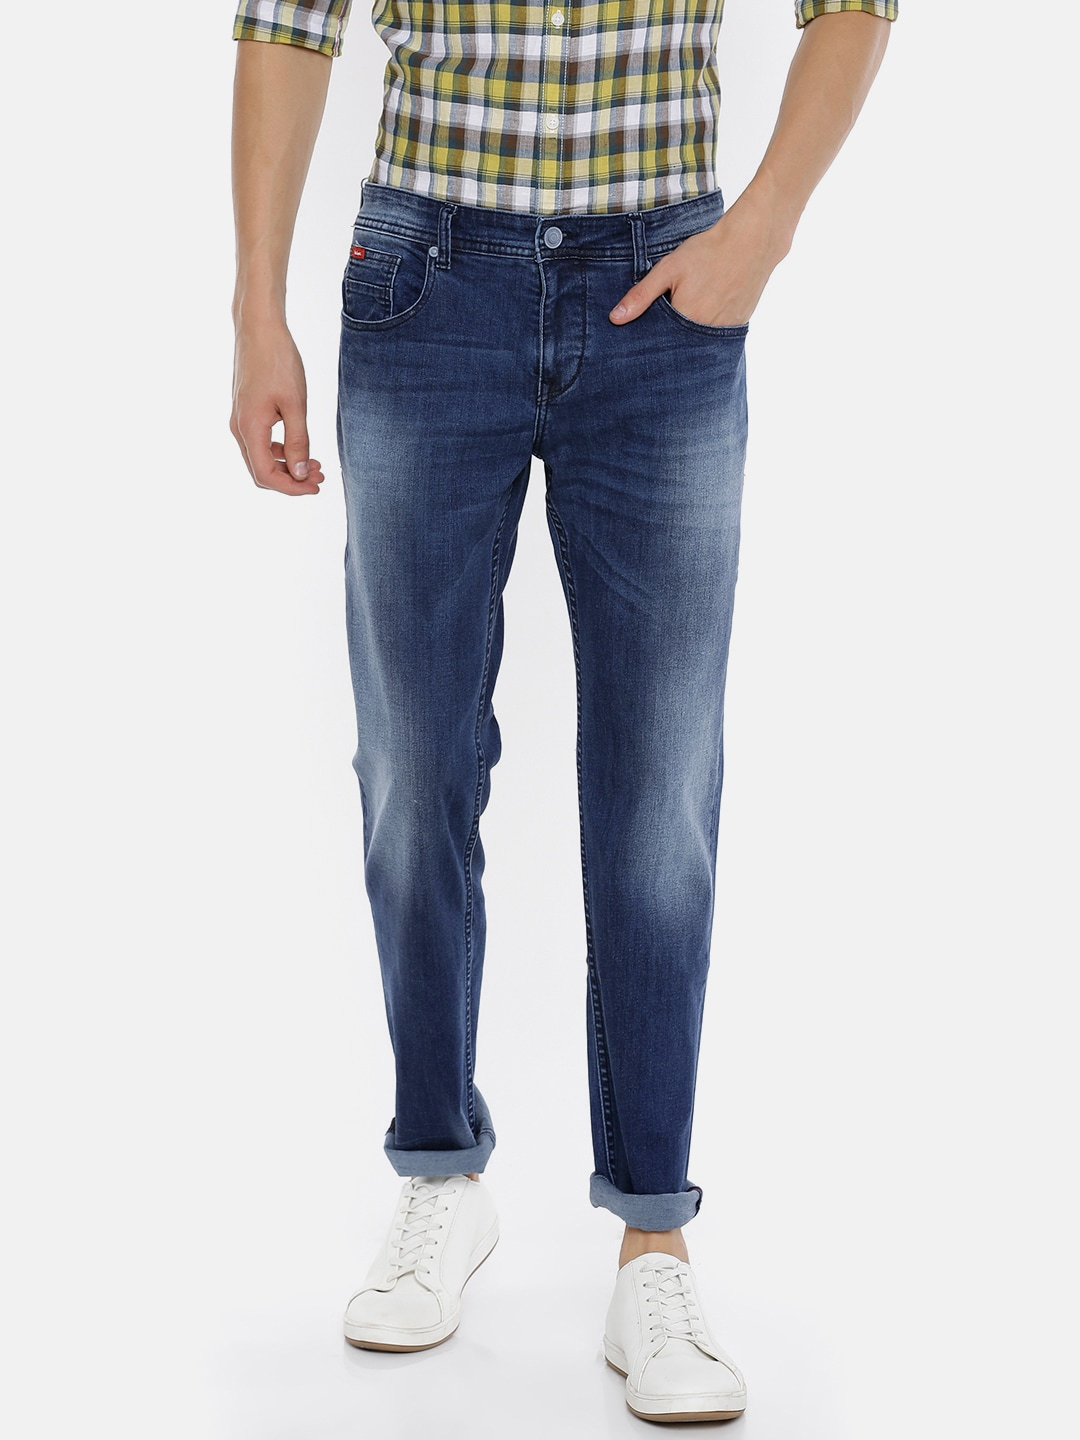 bfa9fa8cdf029 Men Jeans - Buy Jeans for Men in India at best prices